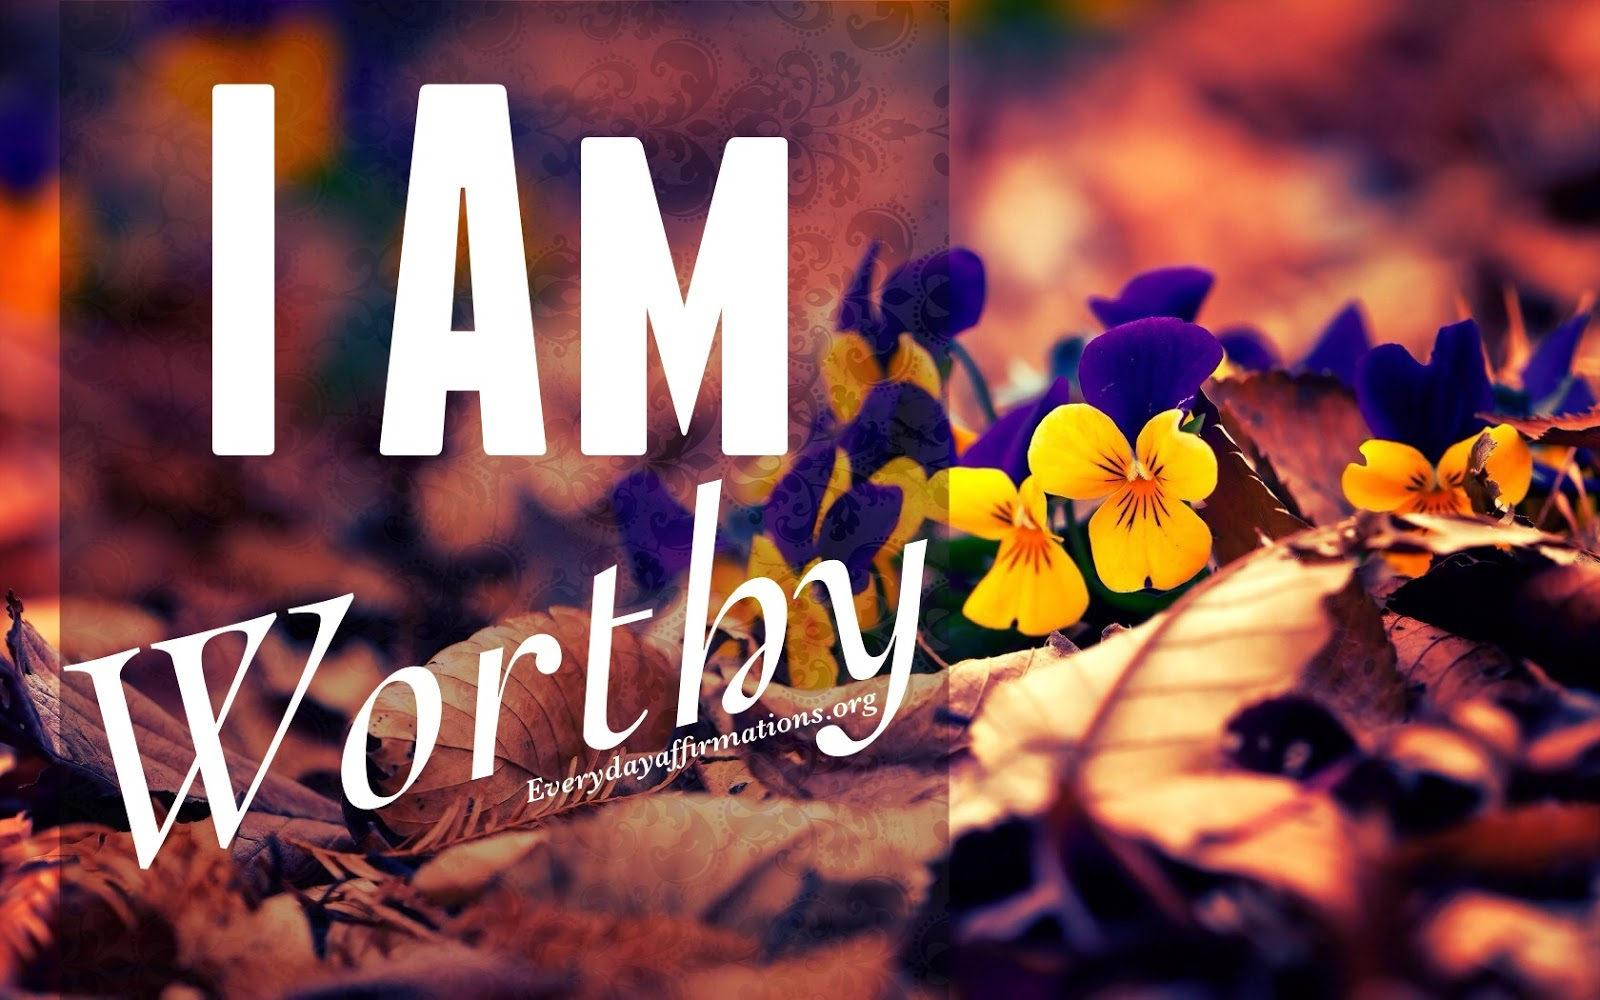 Be Positive Quotes Wallpaper I Am Worthy Affirmations Everyday Affirmations